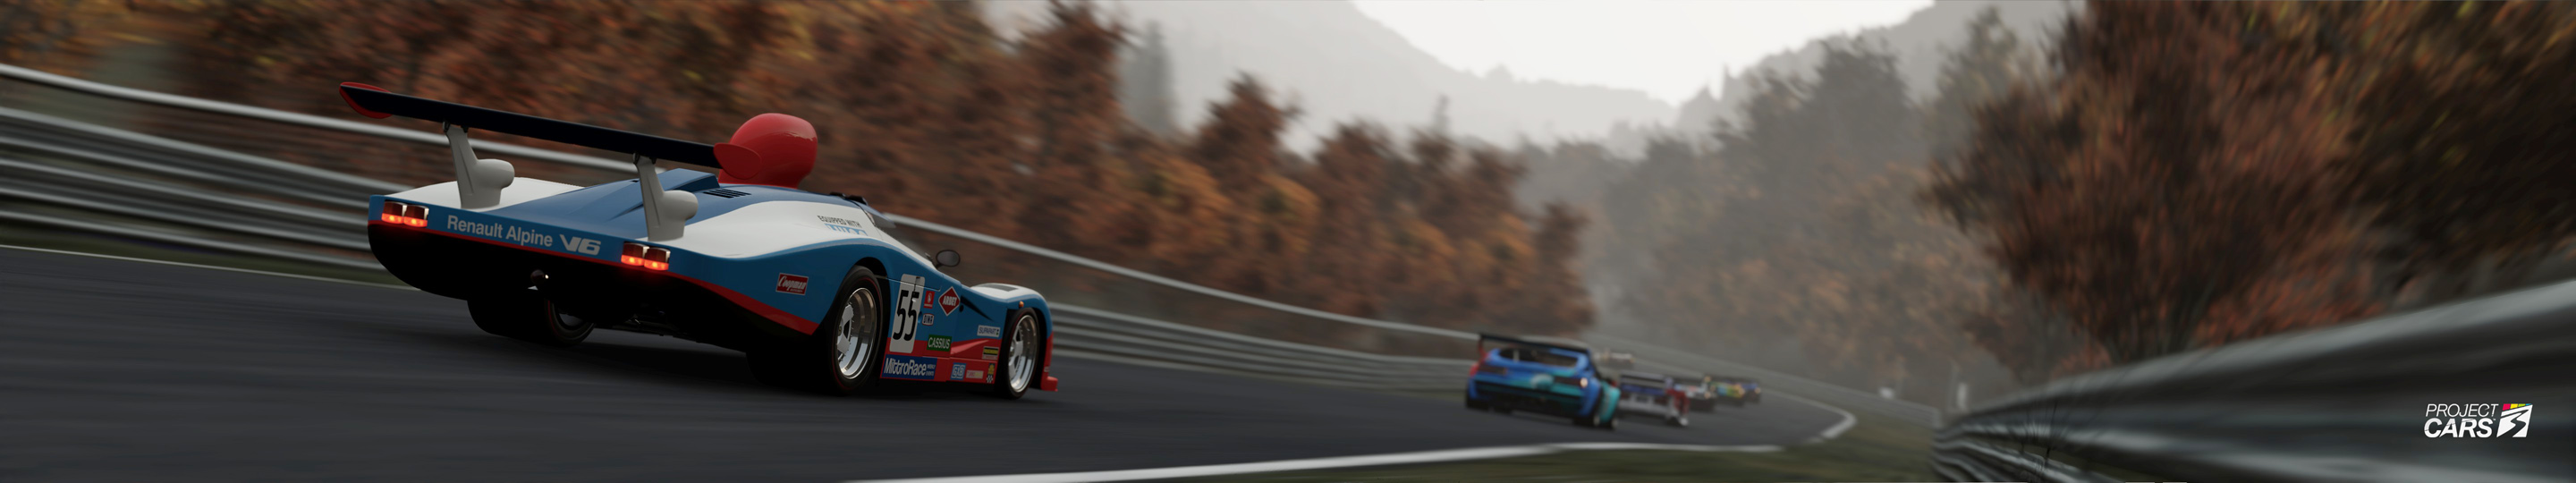 1 PROJECT CARS 3 ALPINE A442B at NORDSCHLEIFE copy.jpg